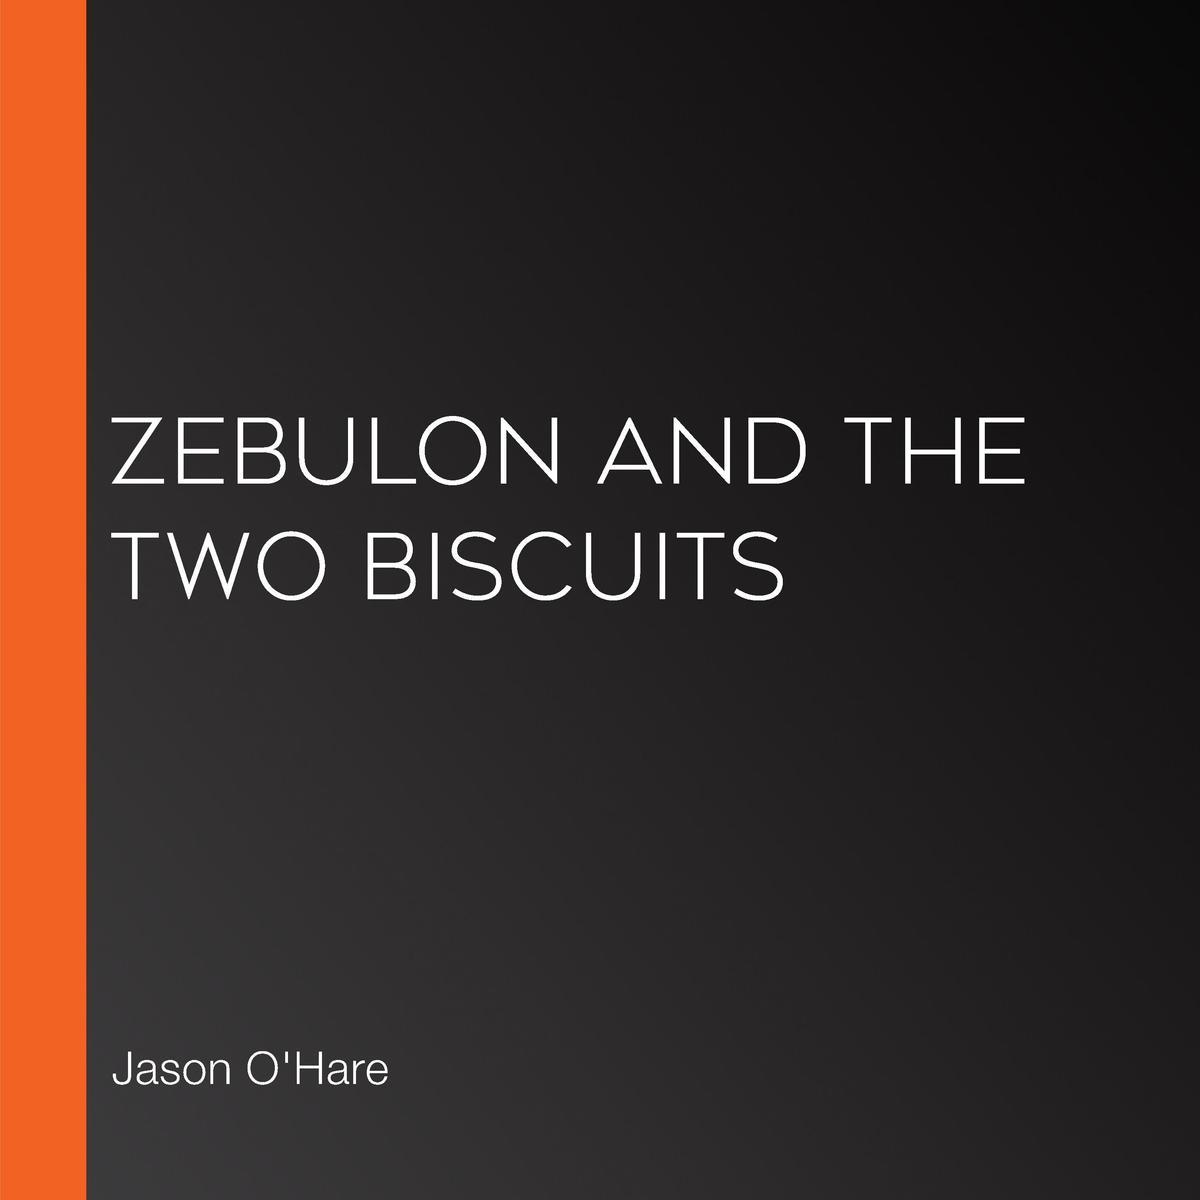 zebulon and the two biscuits - audiobook - walmart com